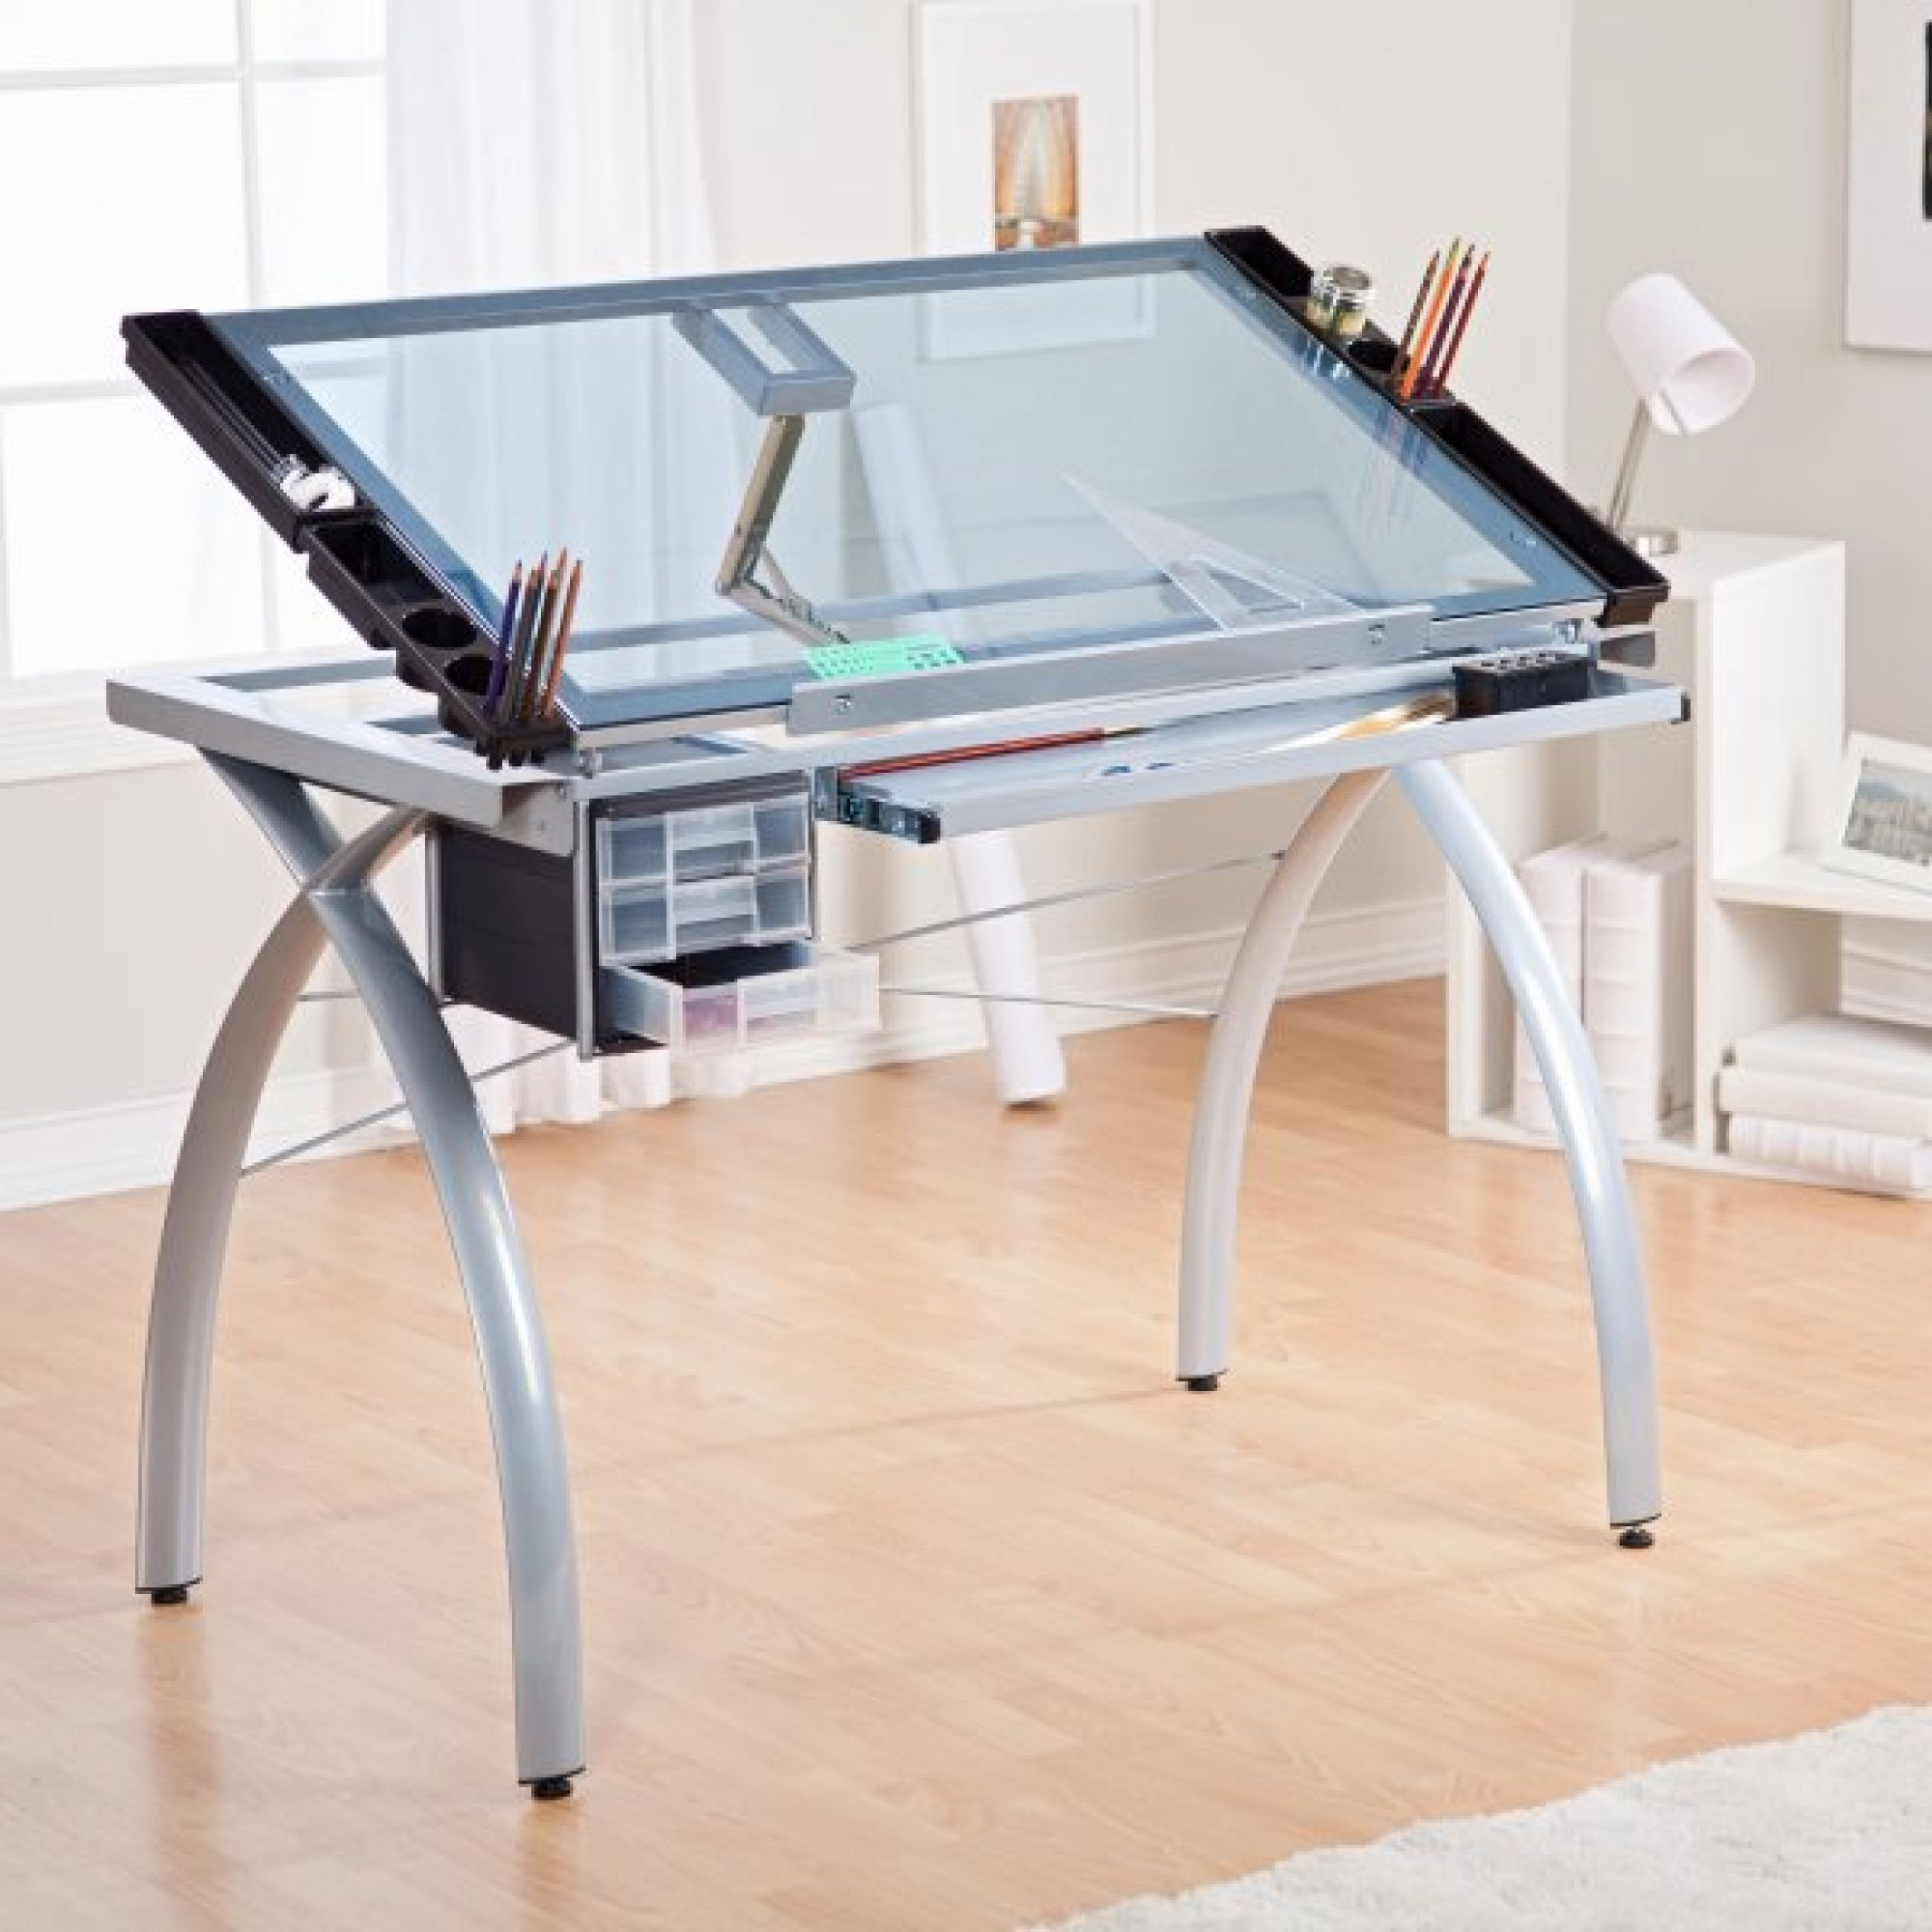 Office chair for drafting table - Studio Designs Glass Top Futura Drafting Table